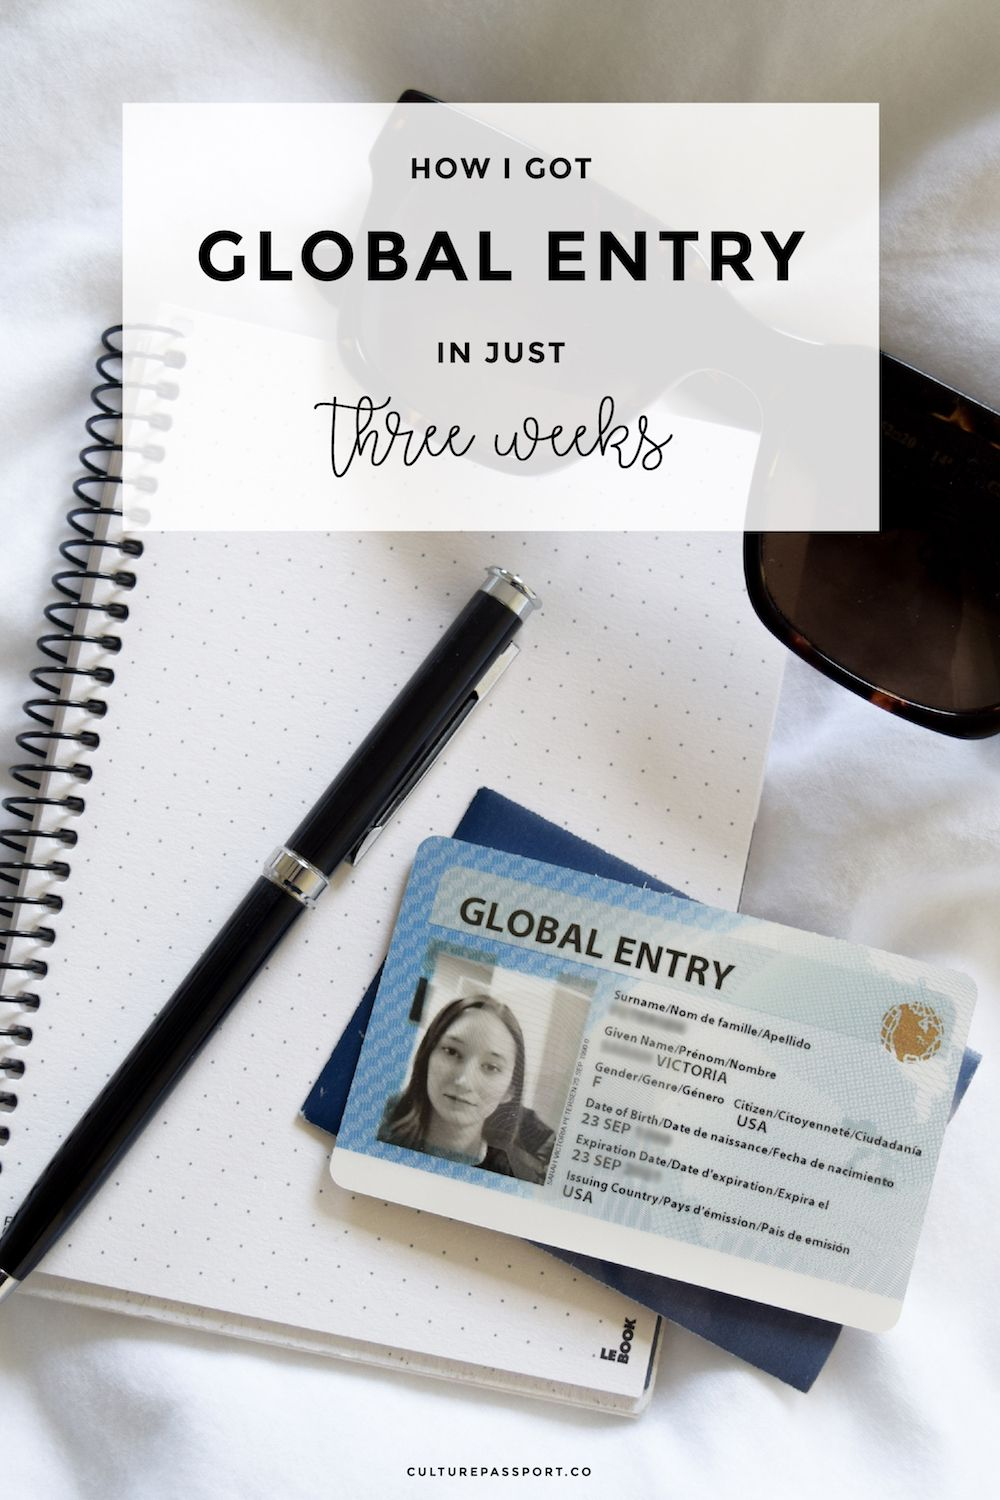 Get global entry quickly, get global entry fast, get global entry in a few weeks, Global Entry Application, Applying for Global Entry